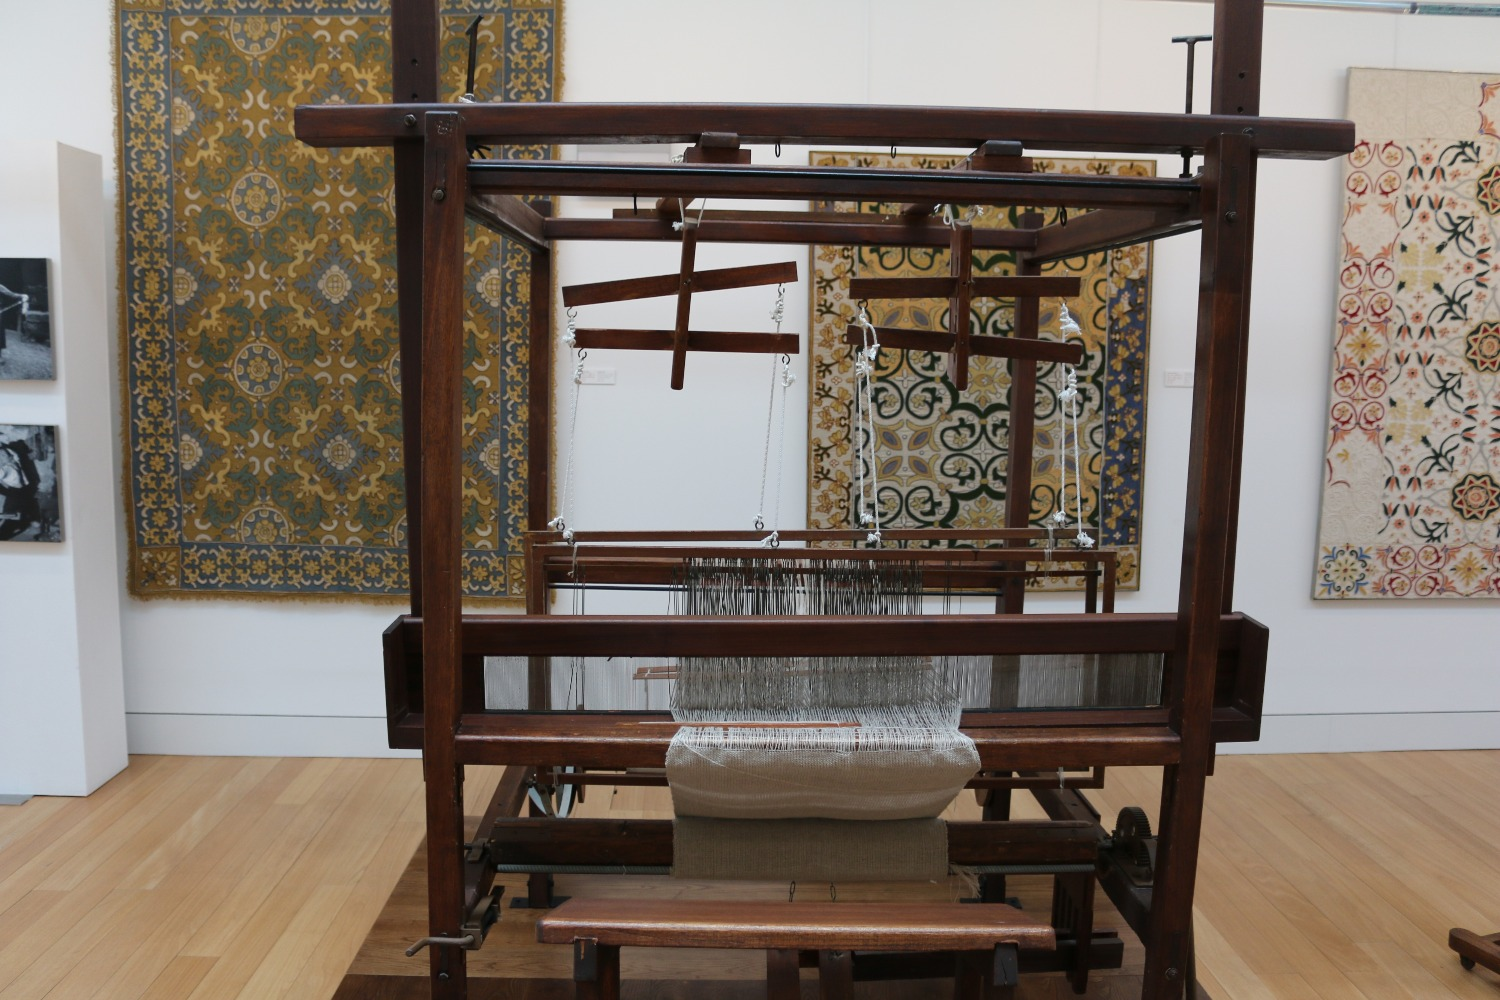 Traditional Loom in the Carpet Museum